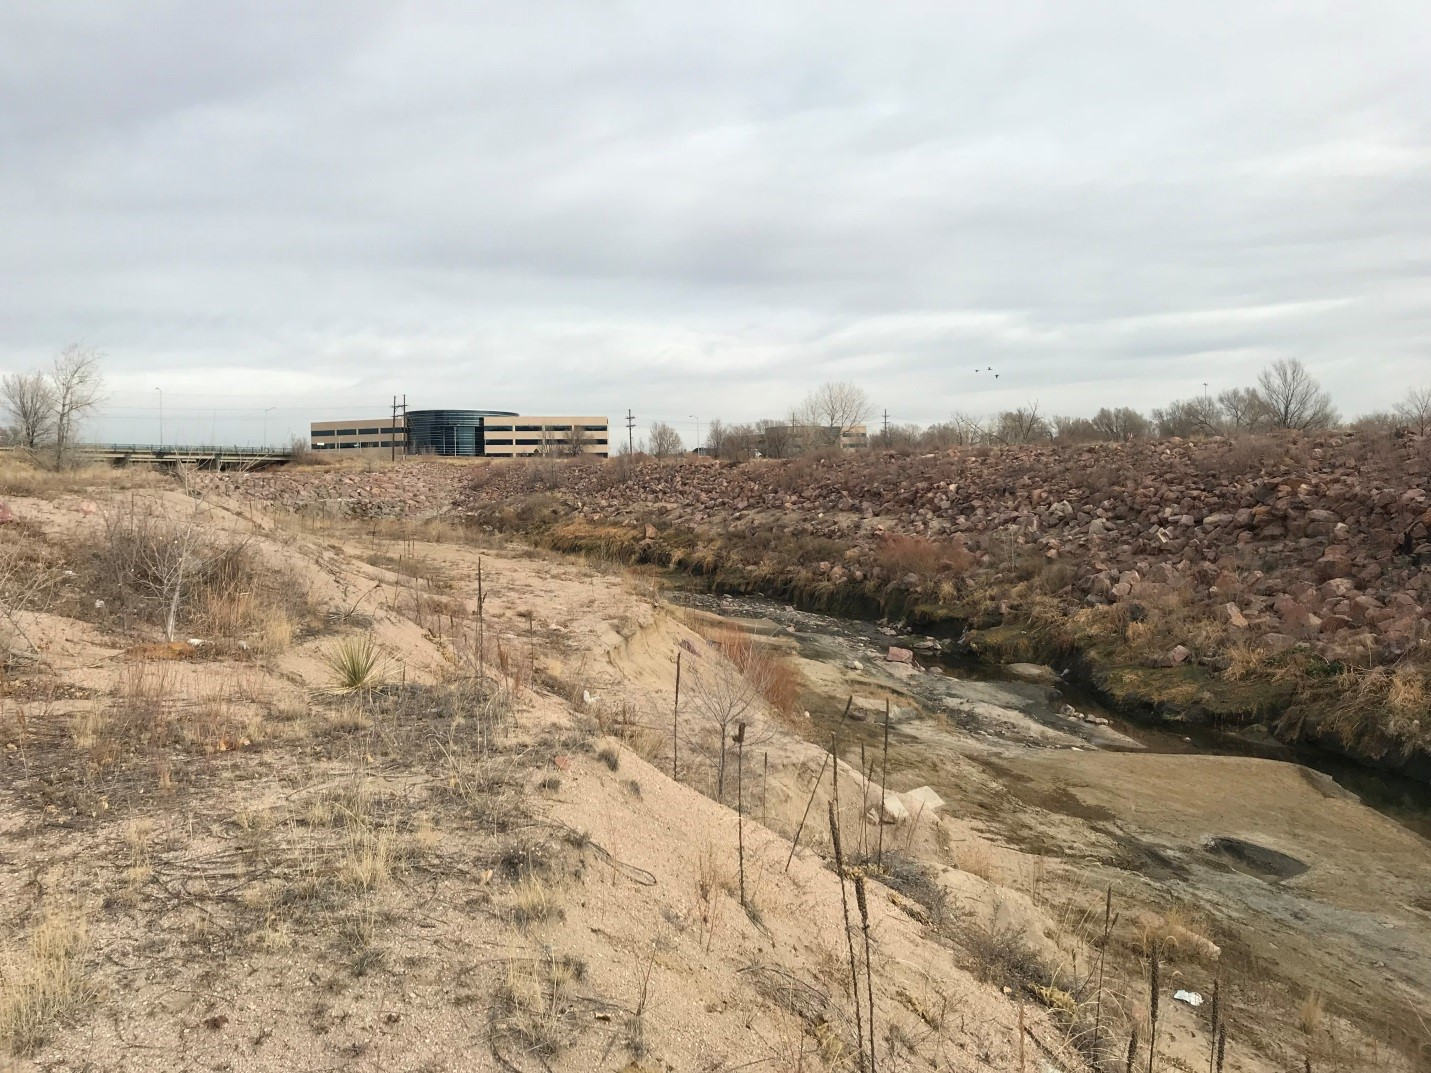 Before - Image showing sandy bank and creek with lots of sediment in it